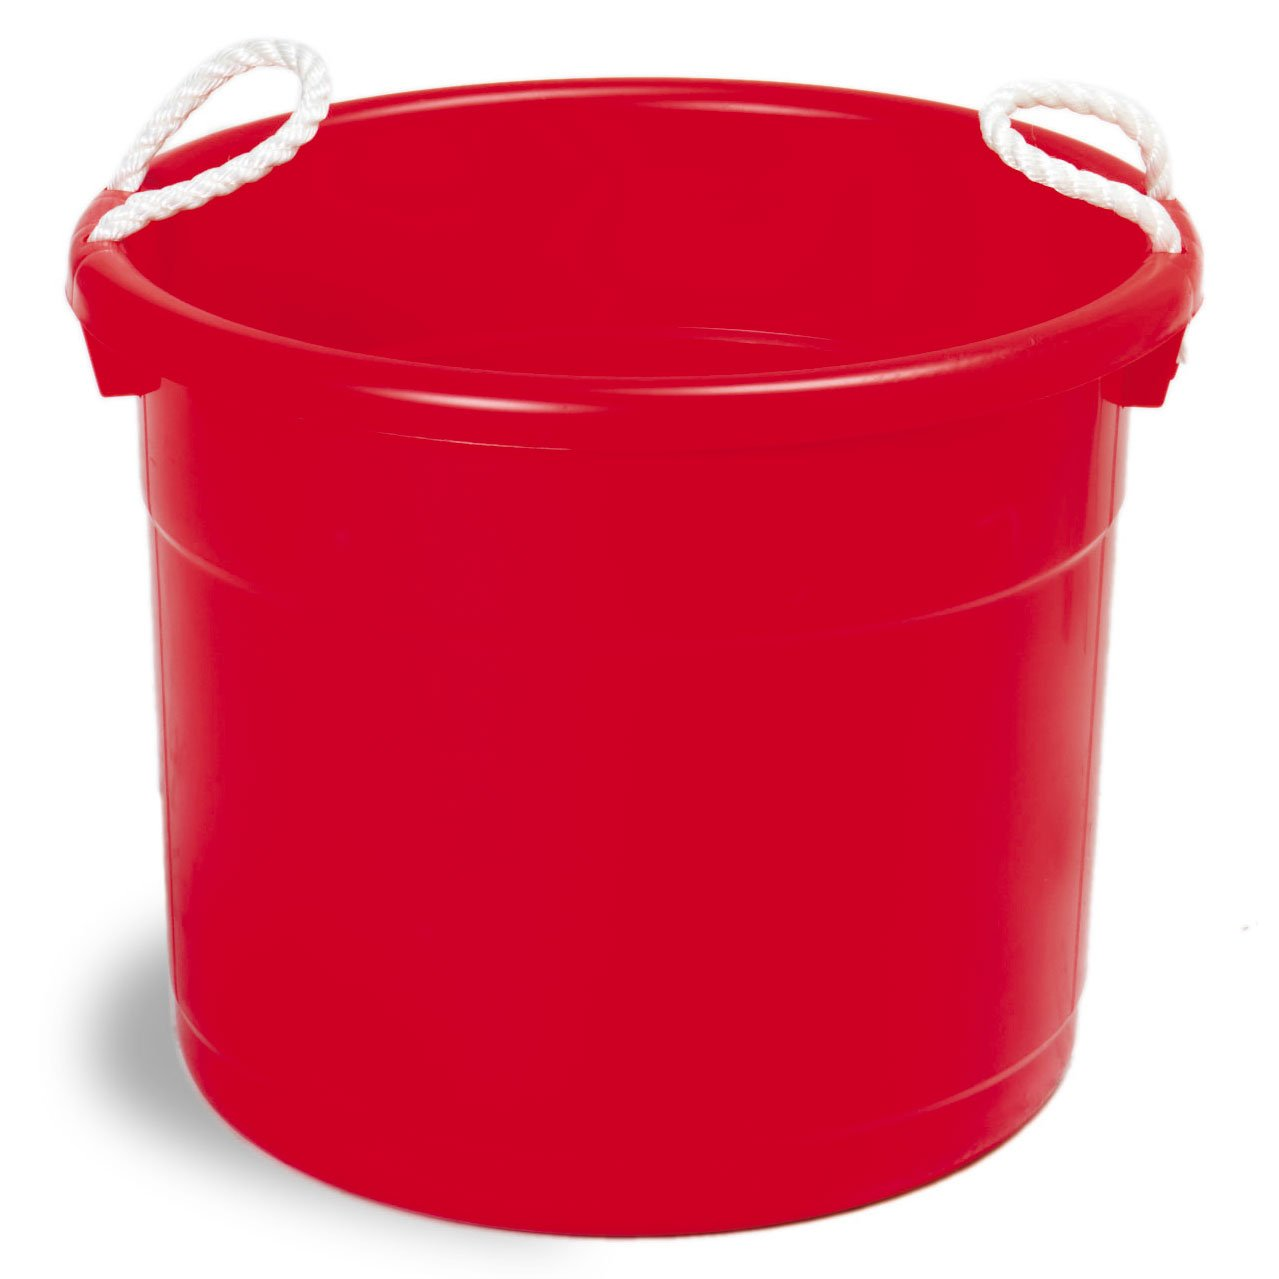 Continental Commercial Huskee Hauler 19 Gallon Capacity Bucket with Handles, Red